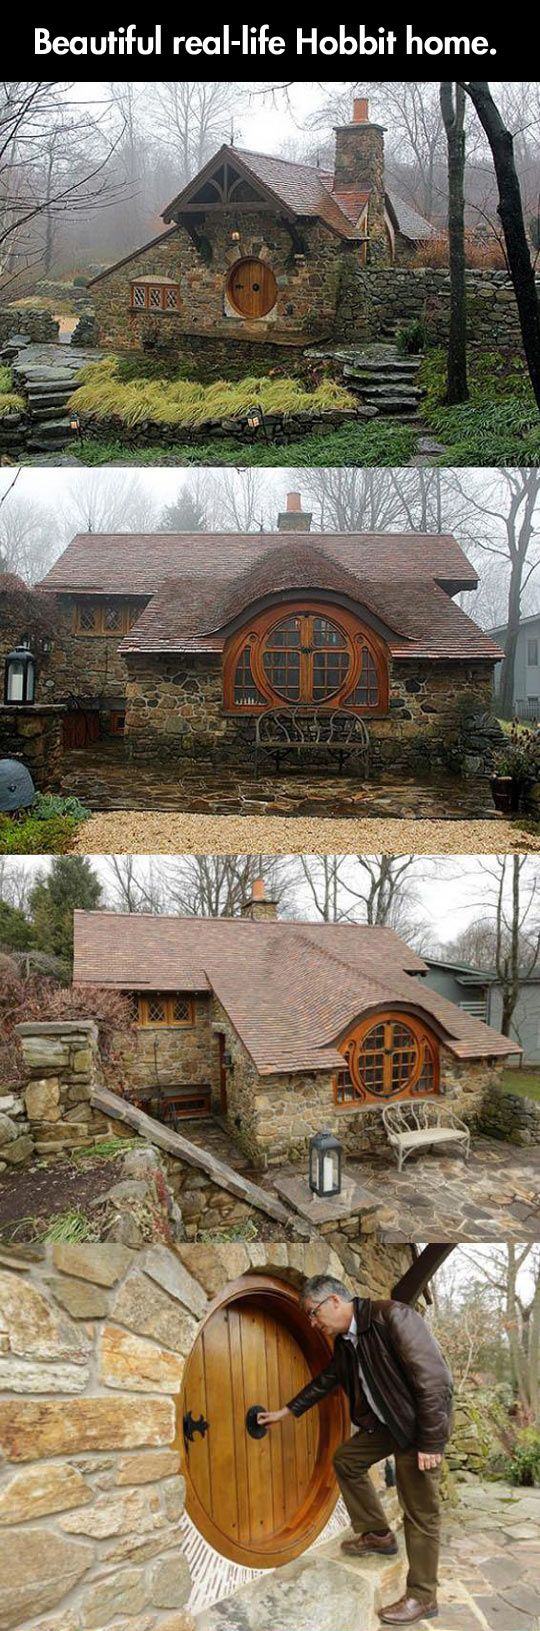 Real life hobbit home…oh mai gawd i want to see this